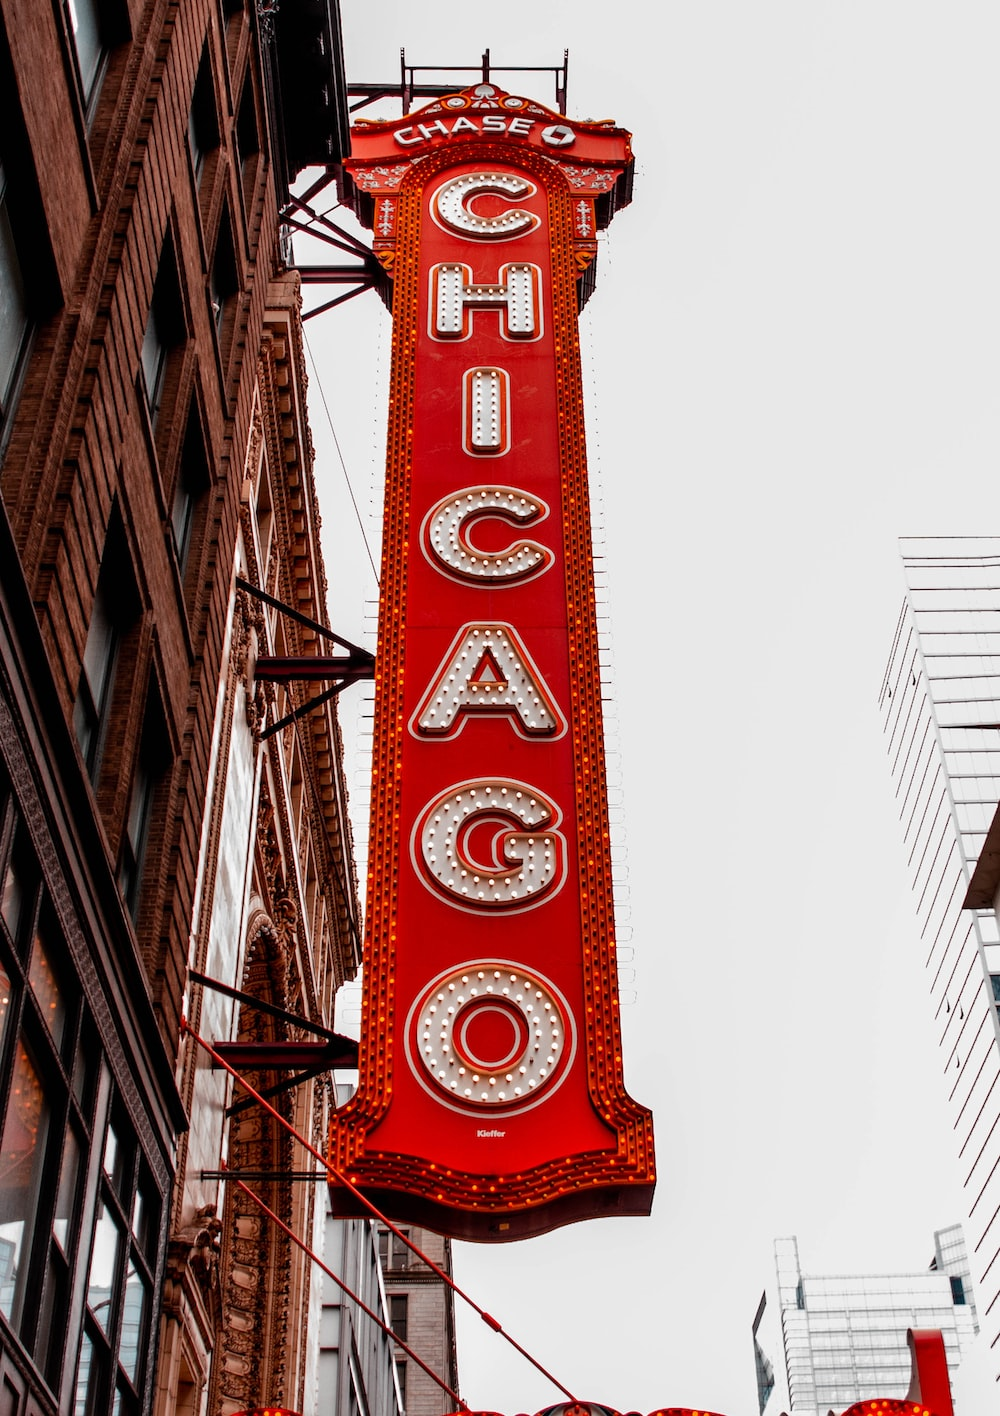 red and white Chase Chicago signage